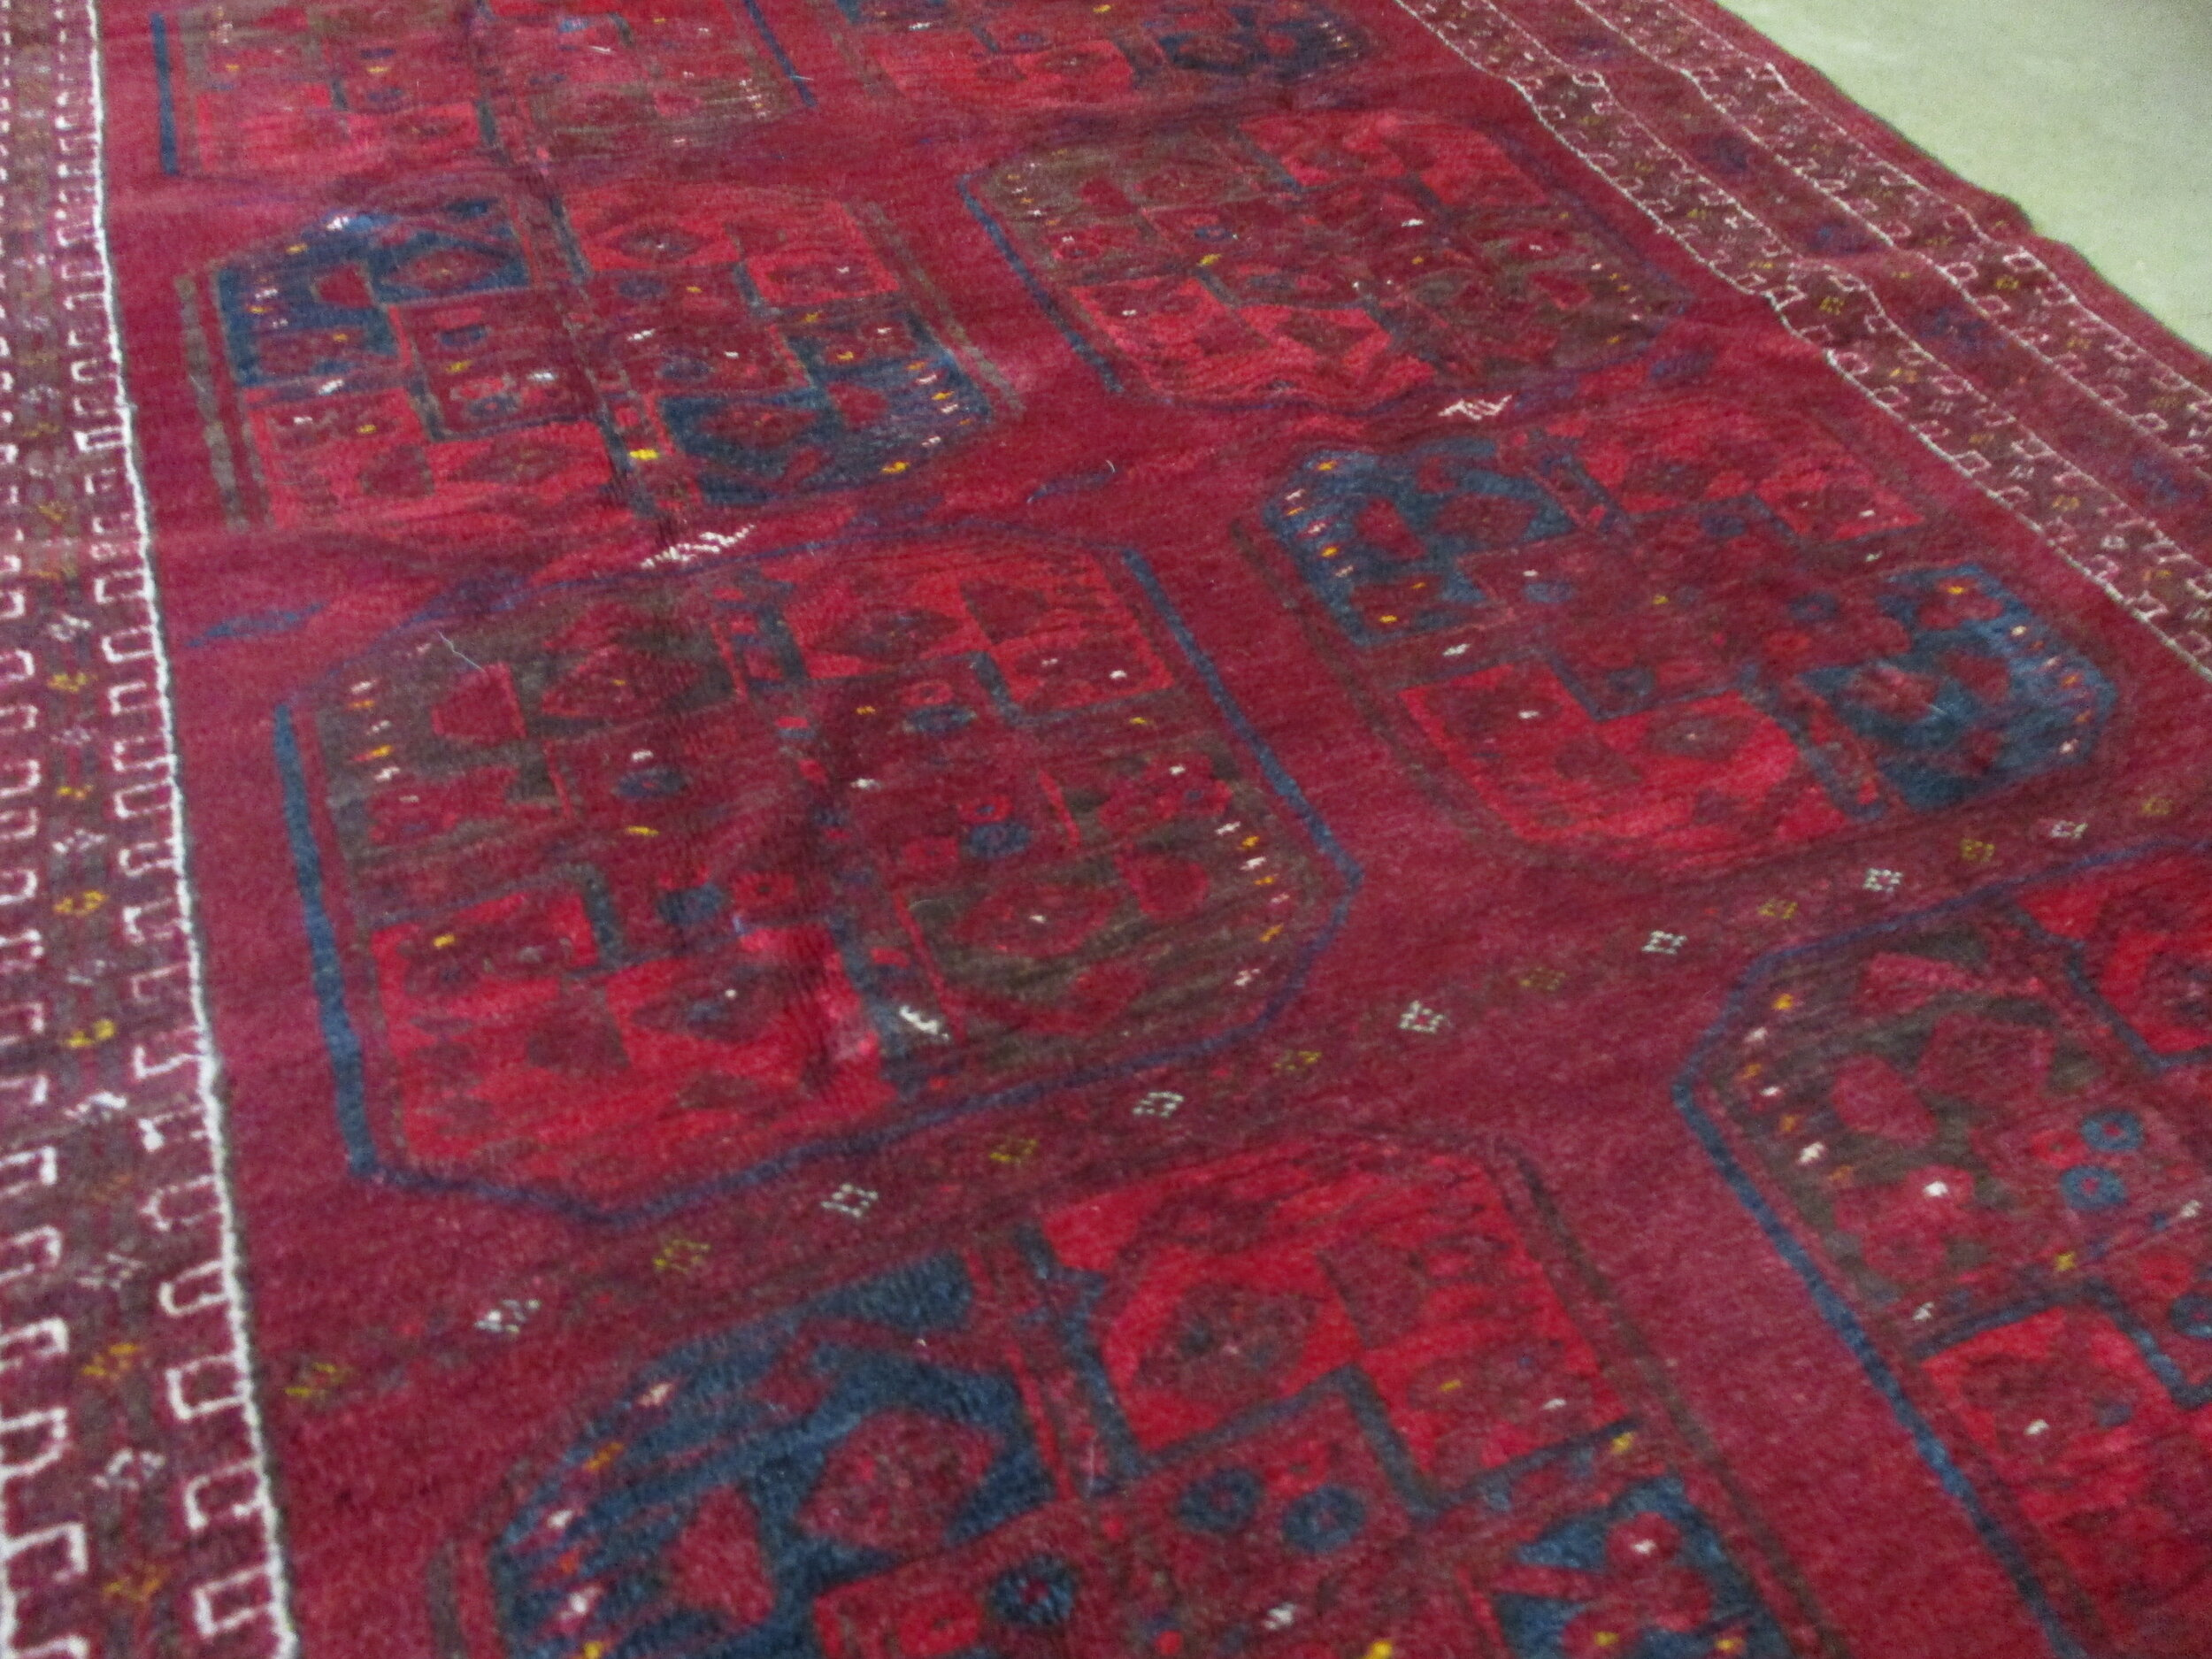 Beautiful old Turkoman rug with the deep, rich reds. Love this piece. Very small increments of a golden yellow, which add a lovely sparkle.